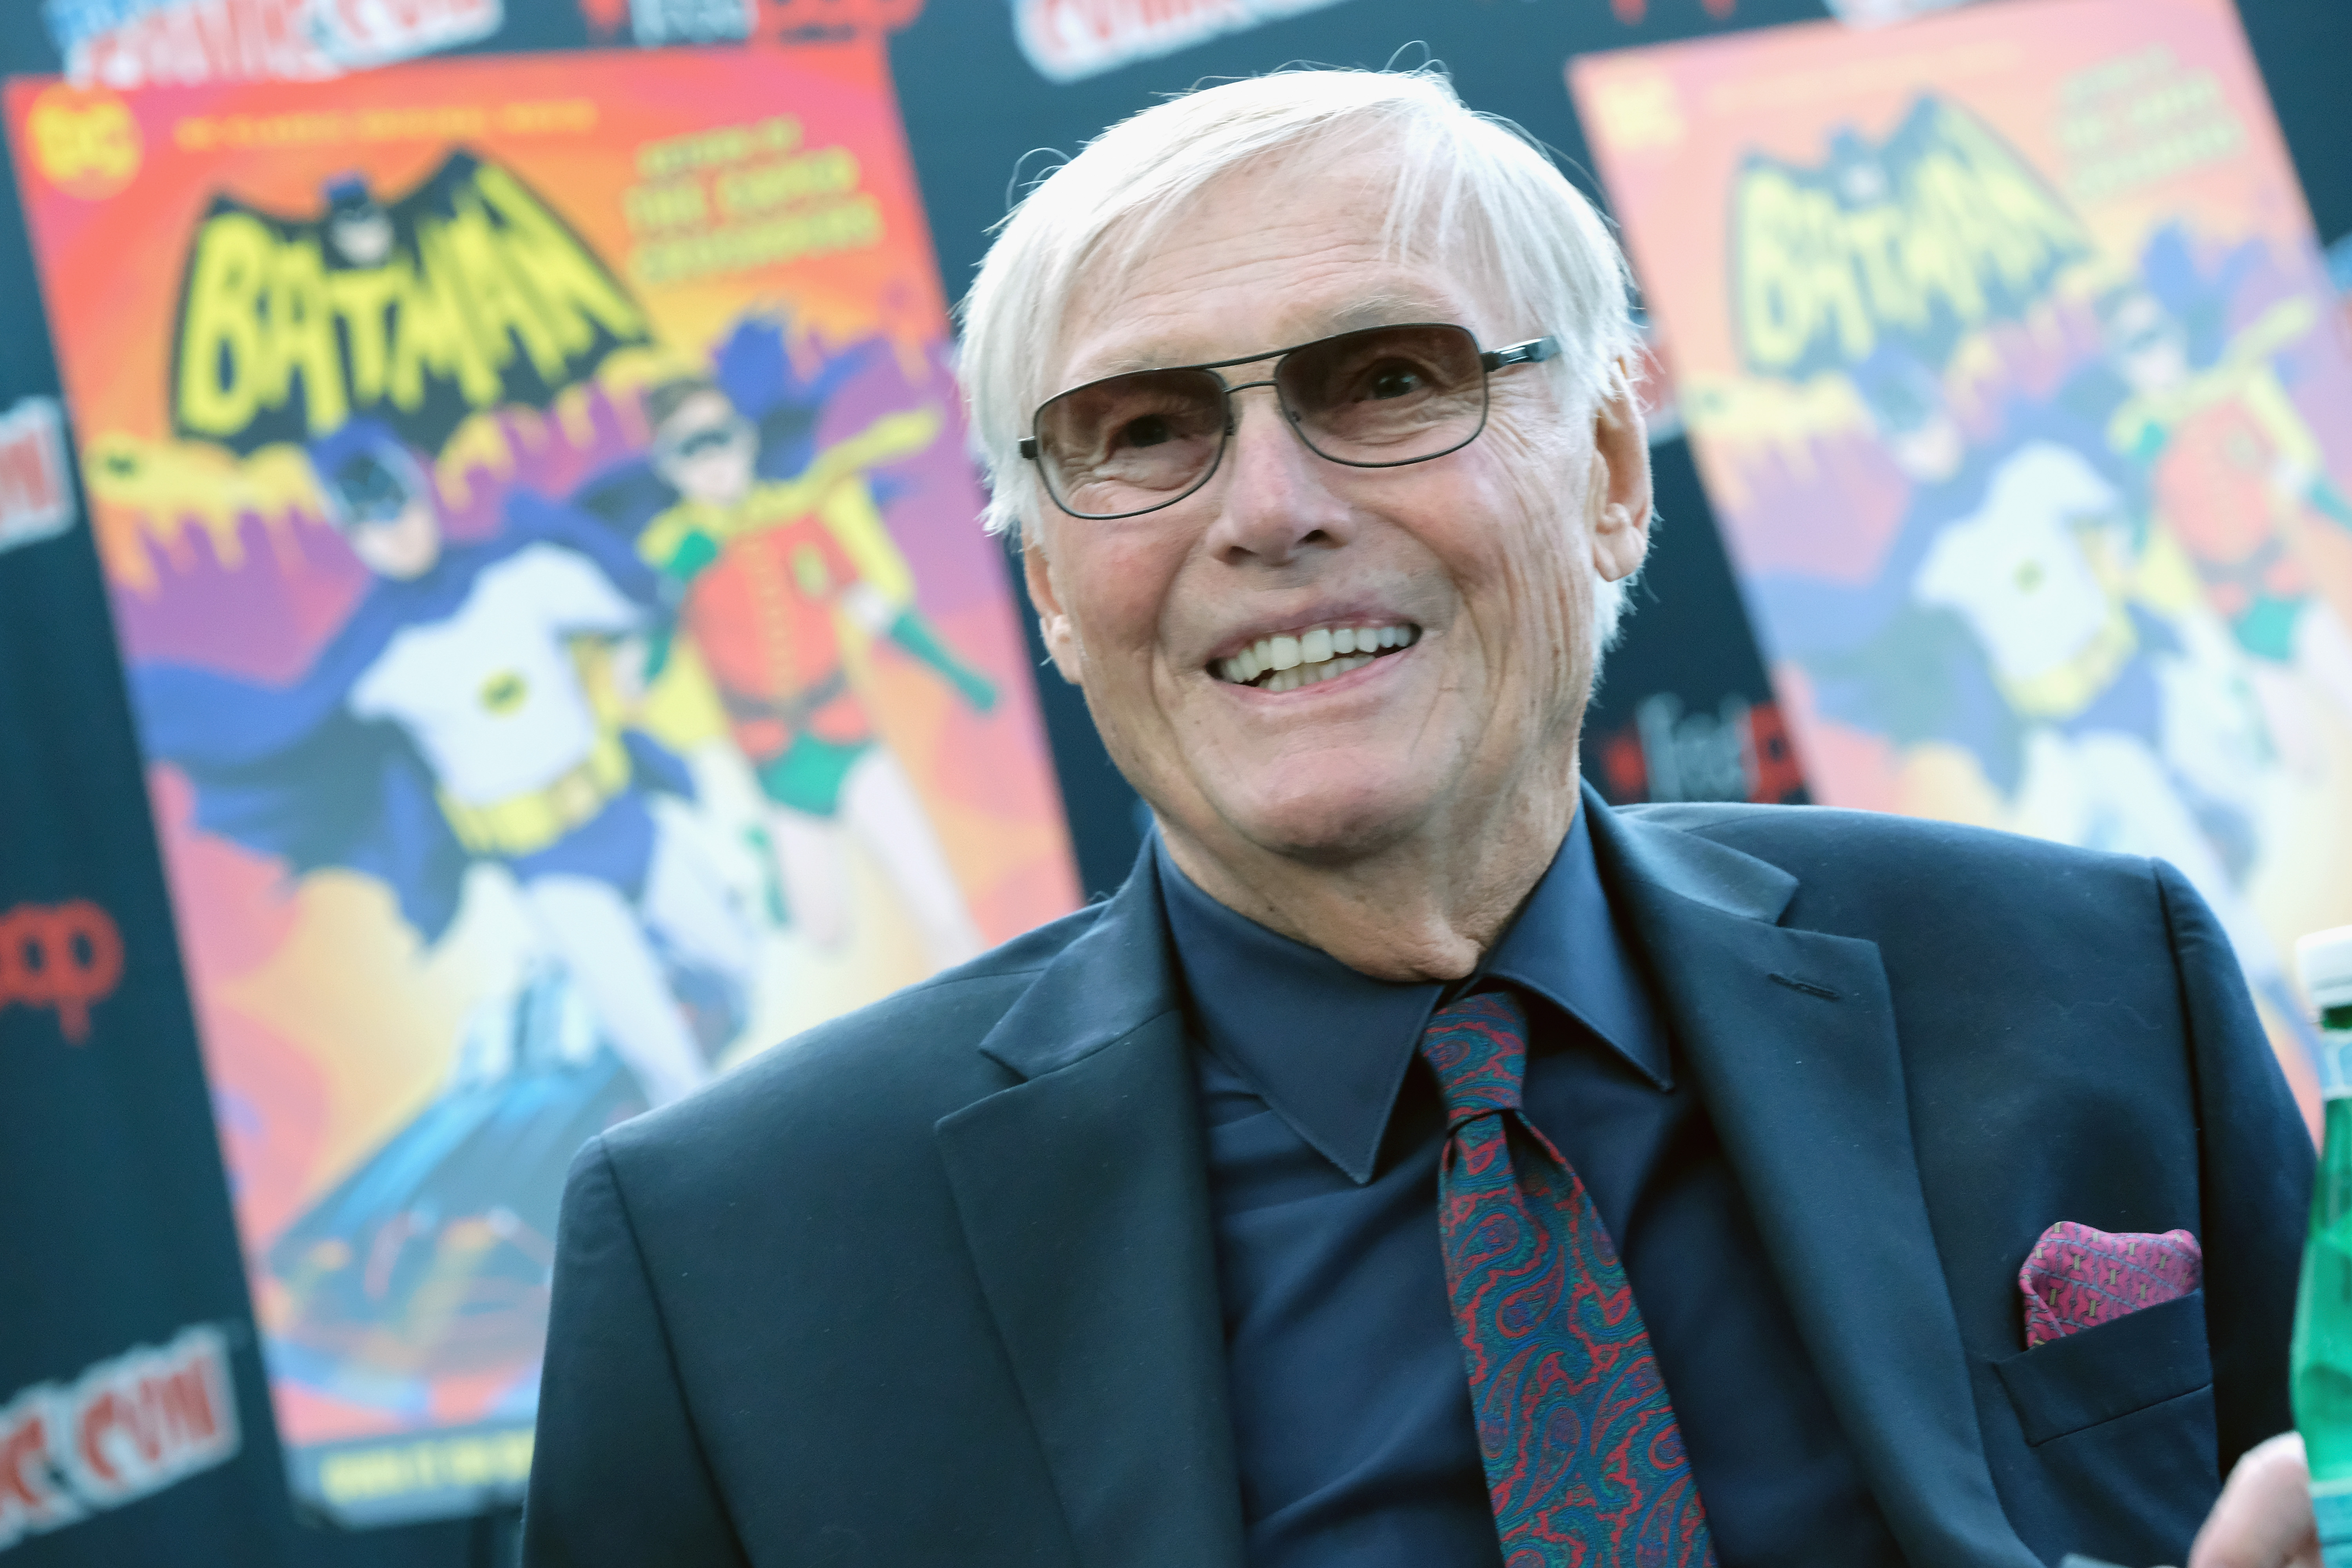 Actor Adam West attends the Batman: Return of the Caped Crusaders Press Room at New York Comic-Con - Day 1 at Jacob Javits Center on October 6, 2016 in New York City. (Photo by Mike Coppola/Getty Images)